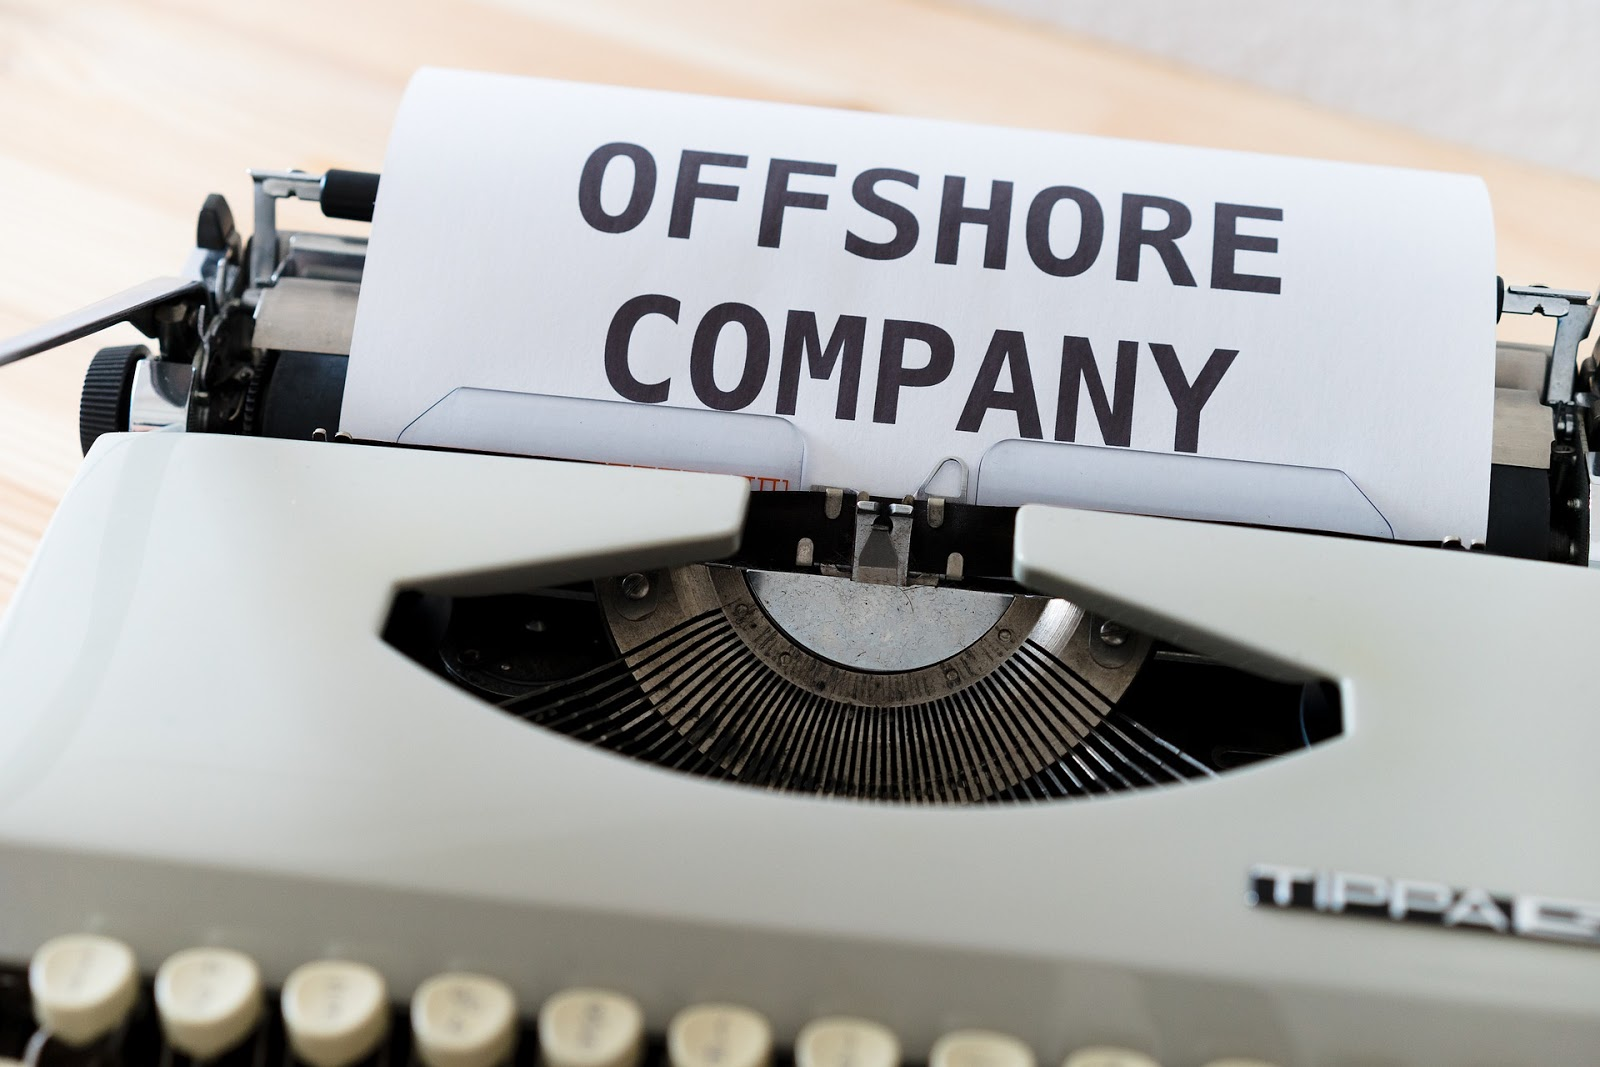 offshore company word in typewriter